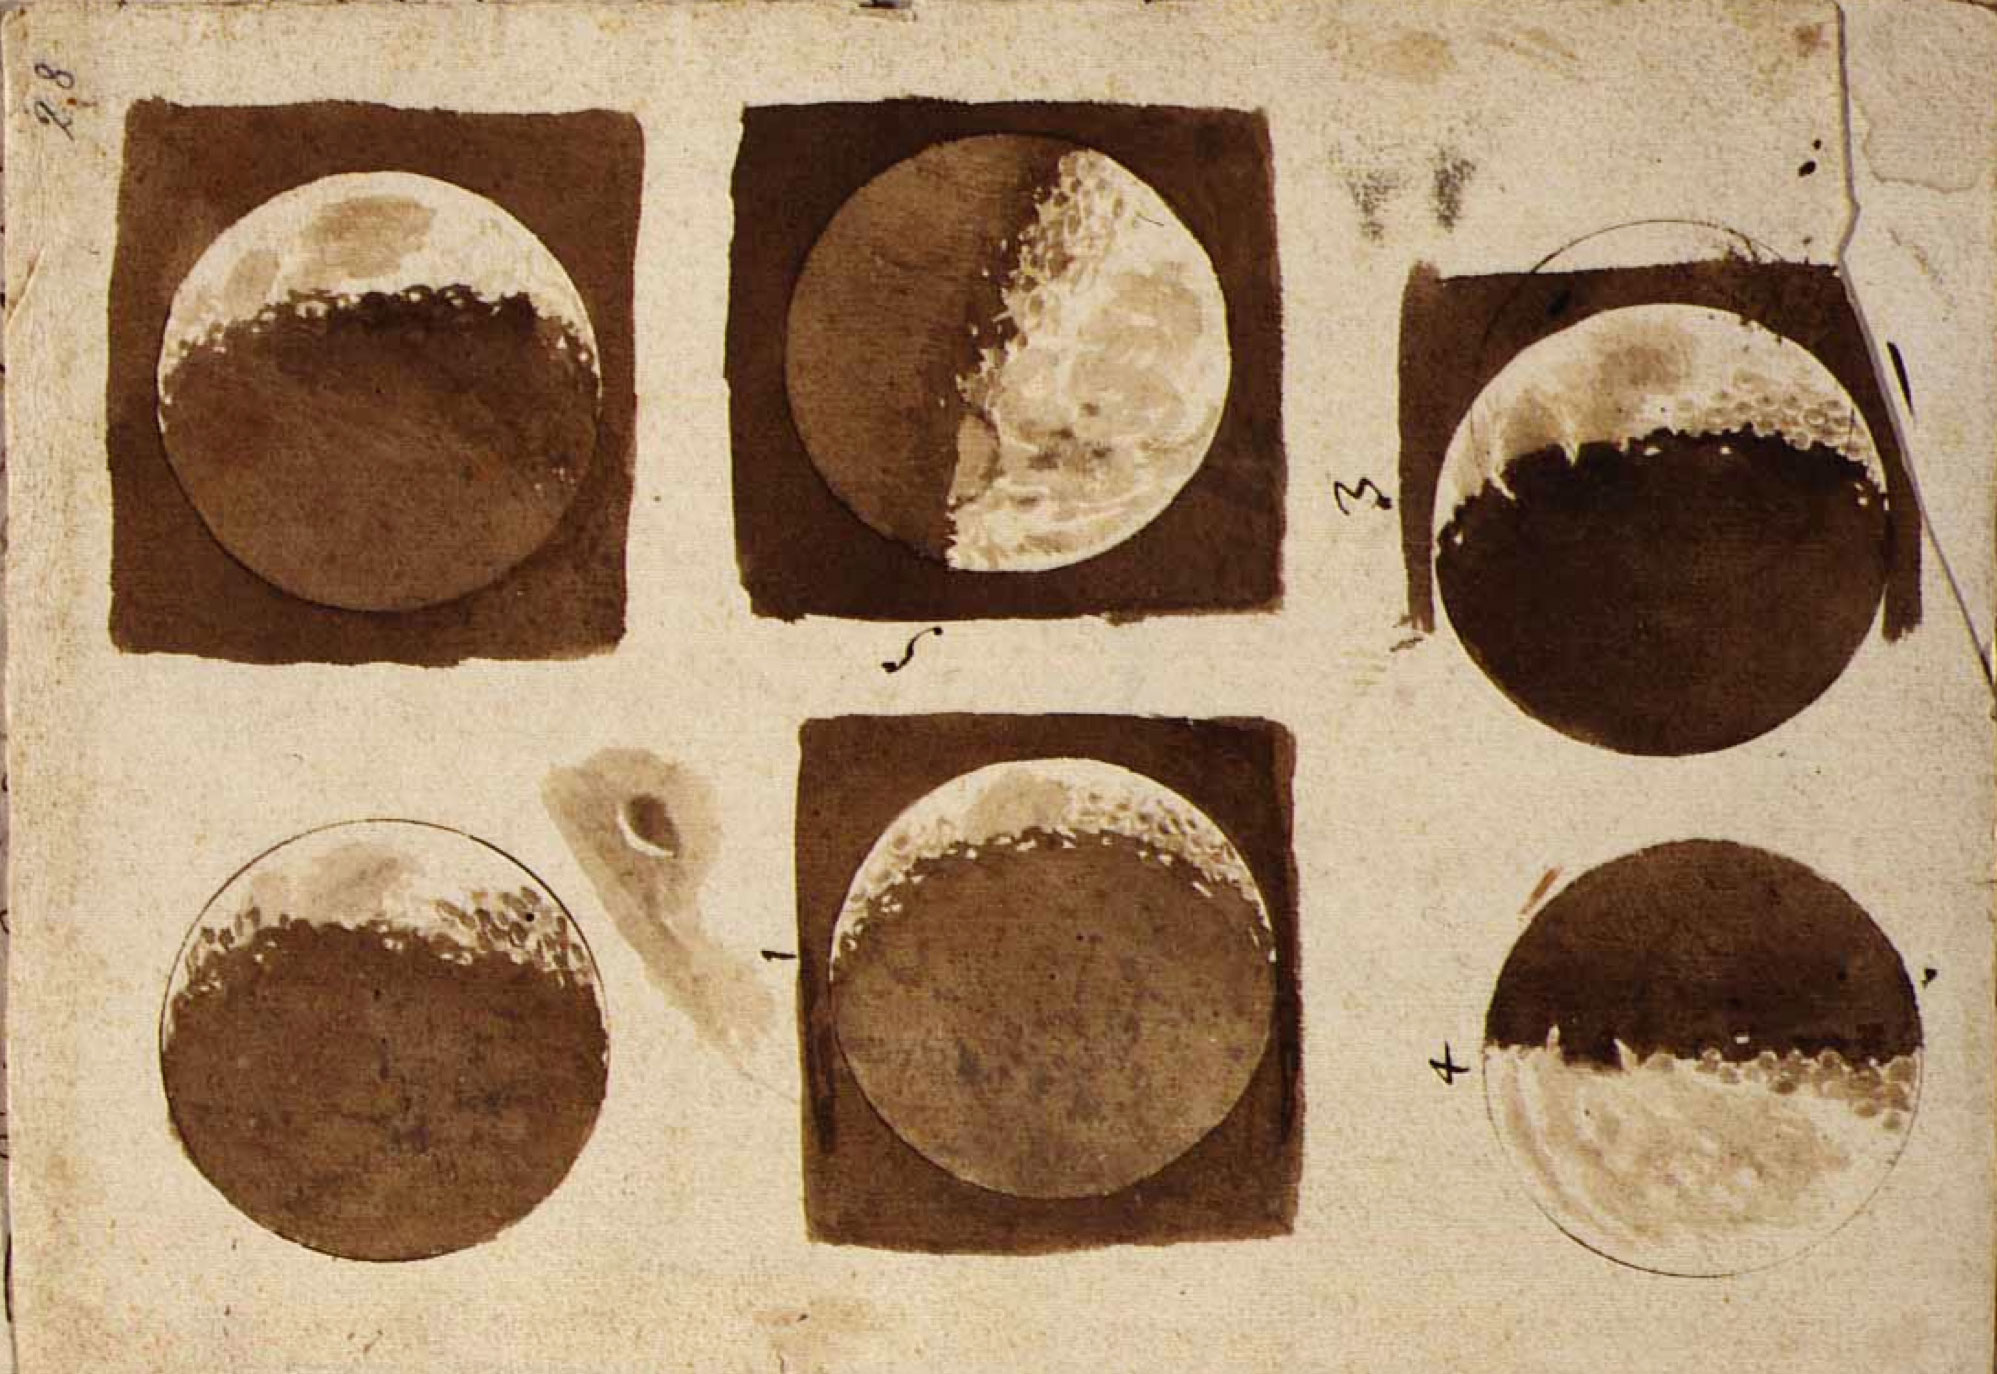 How Galileo saw the night sky